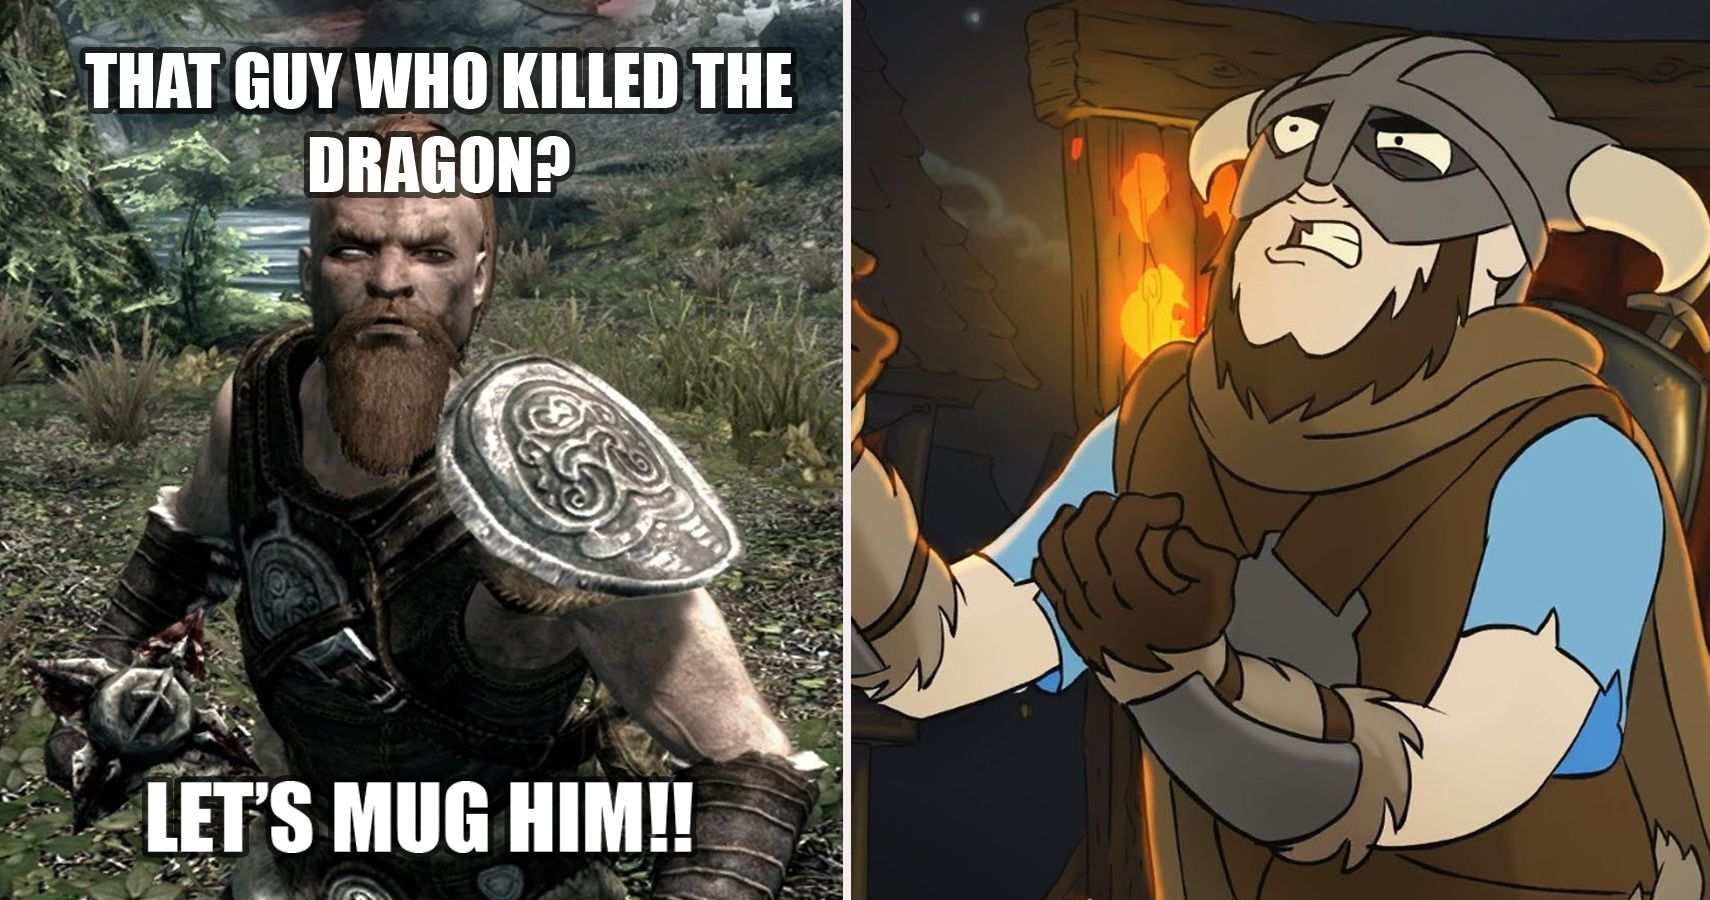 Fus-Ro-Dank: Skyrim Memes That Are Too Hilarious For Words